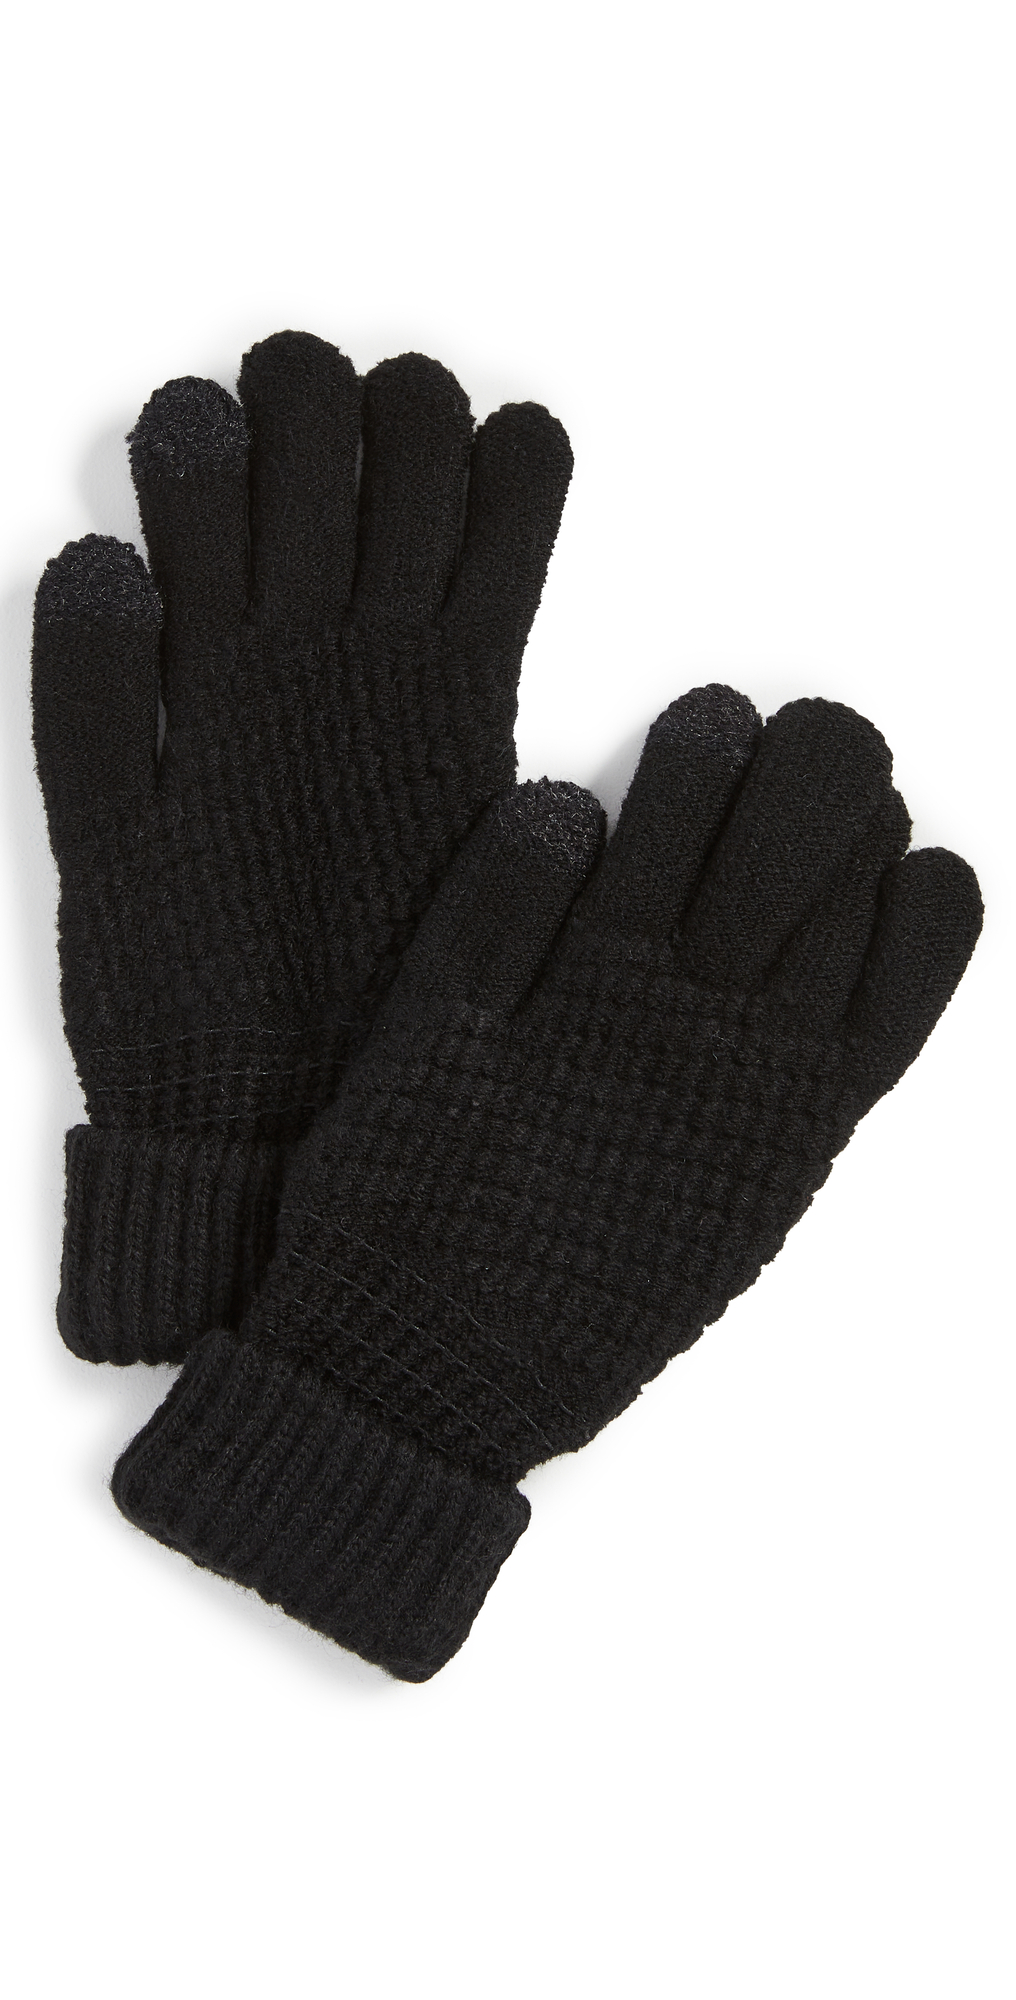 Lined Knit Touch Screen Gloves